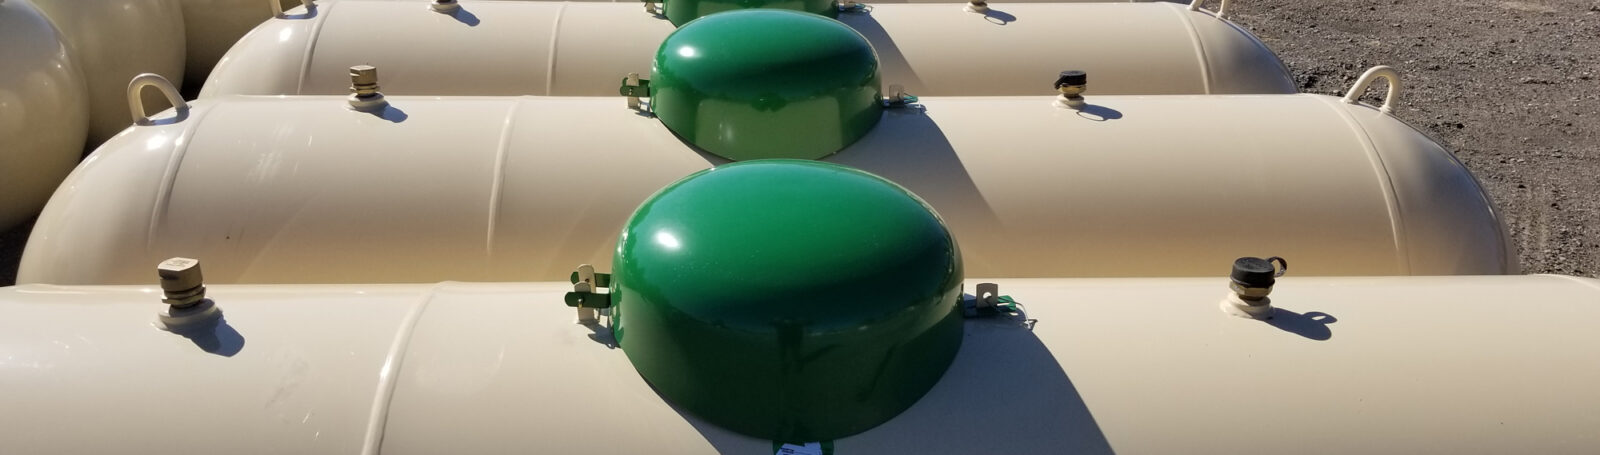 We have Propane Tanks of all Sizes for Rent - Tank Rentals